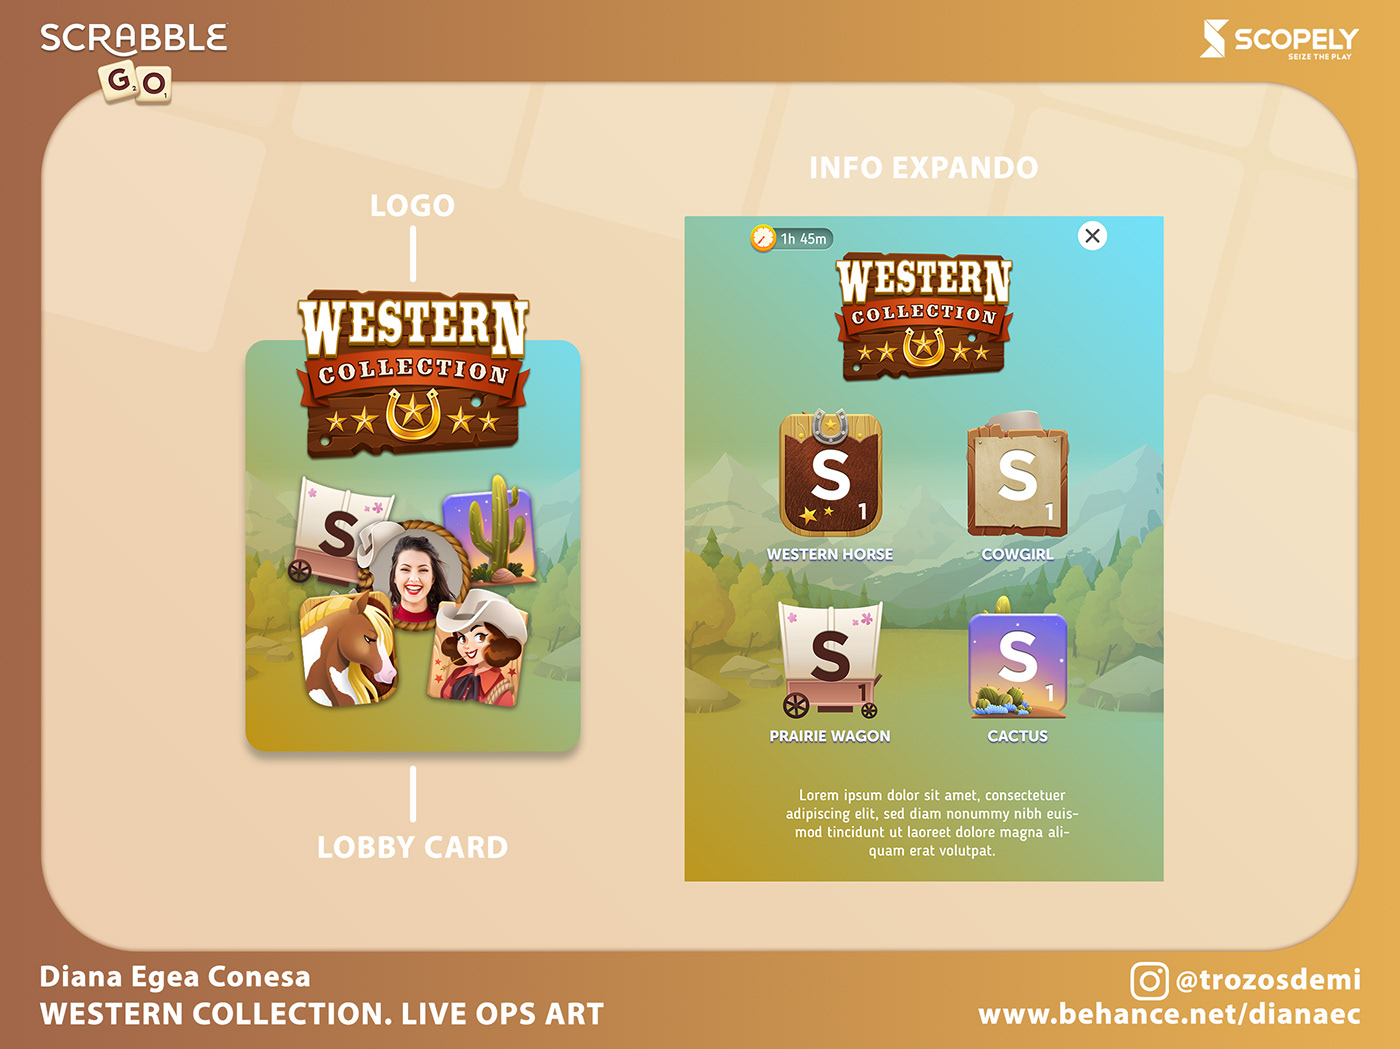 cartoon chest frame live ops mobile game Popup Scopely scrabble go tiles western